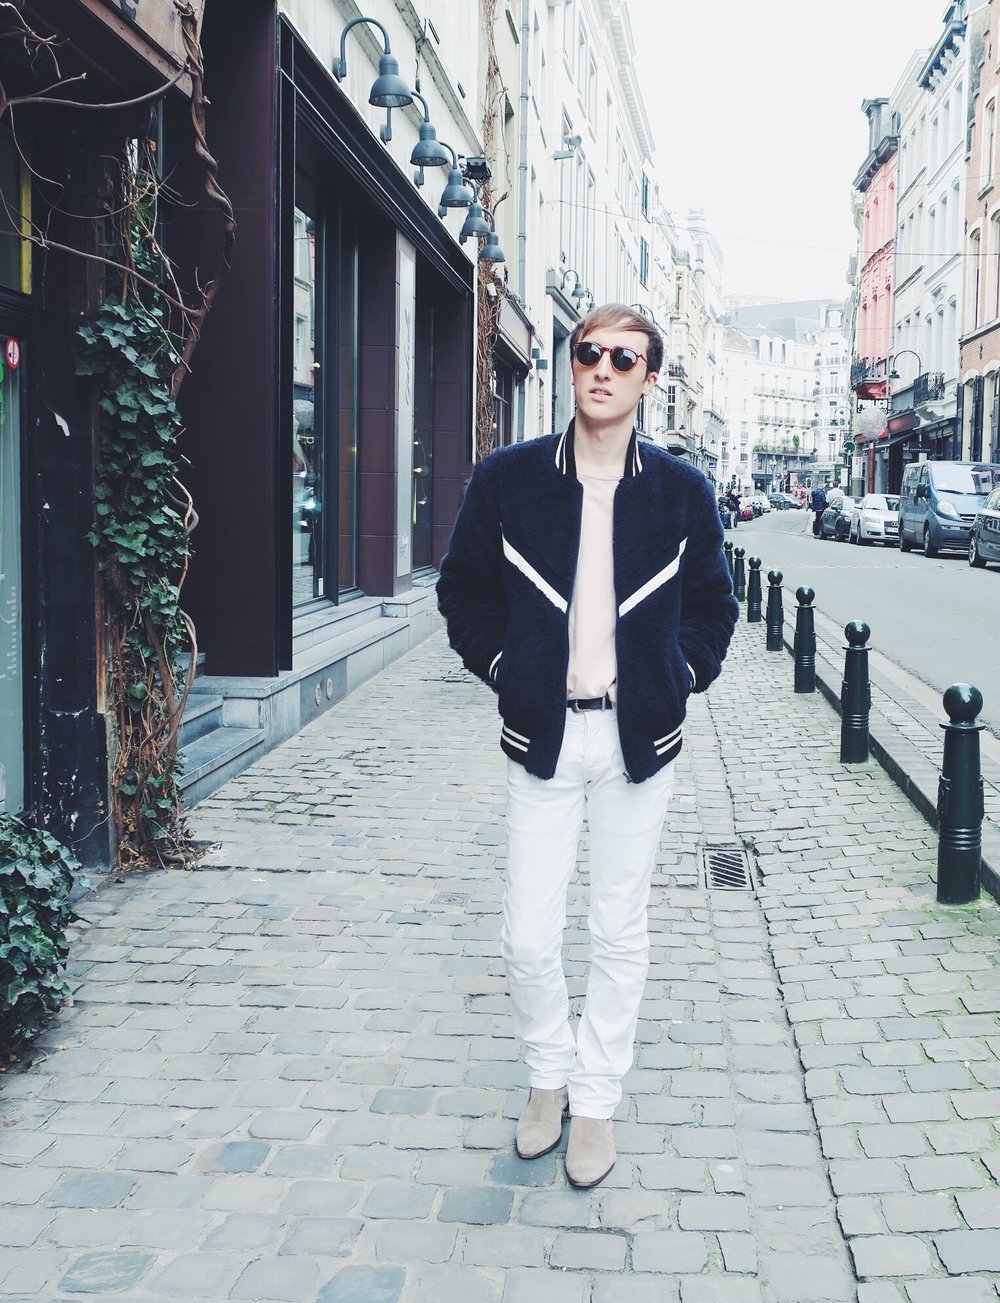 Essentiel bomber jacket - Cos sweater - Zara trousers - Zara belt - Zign boots via Zalando - Asos sunglasses